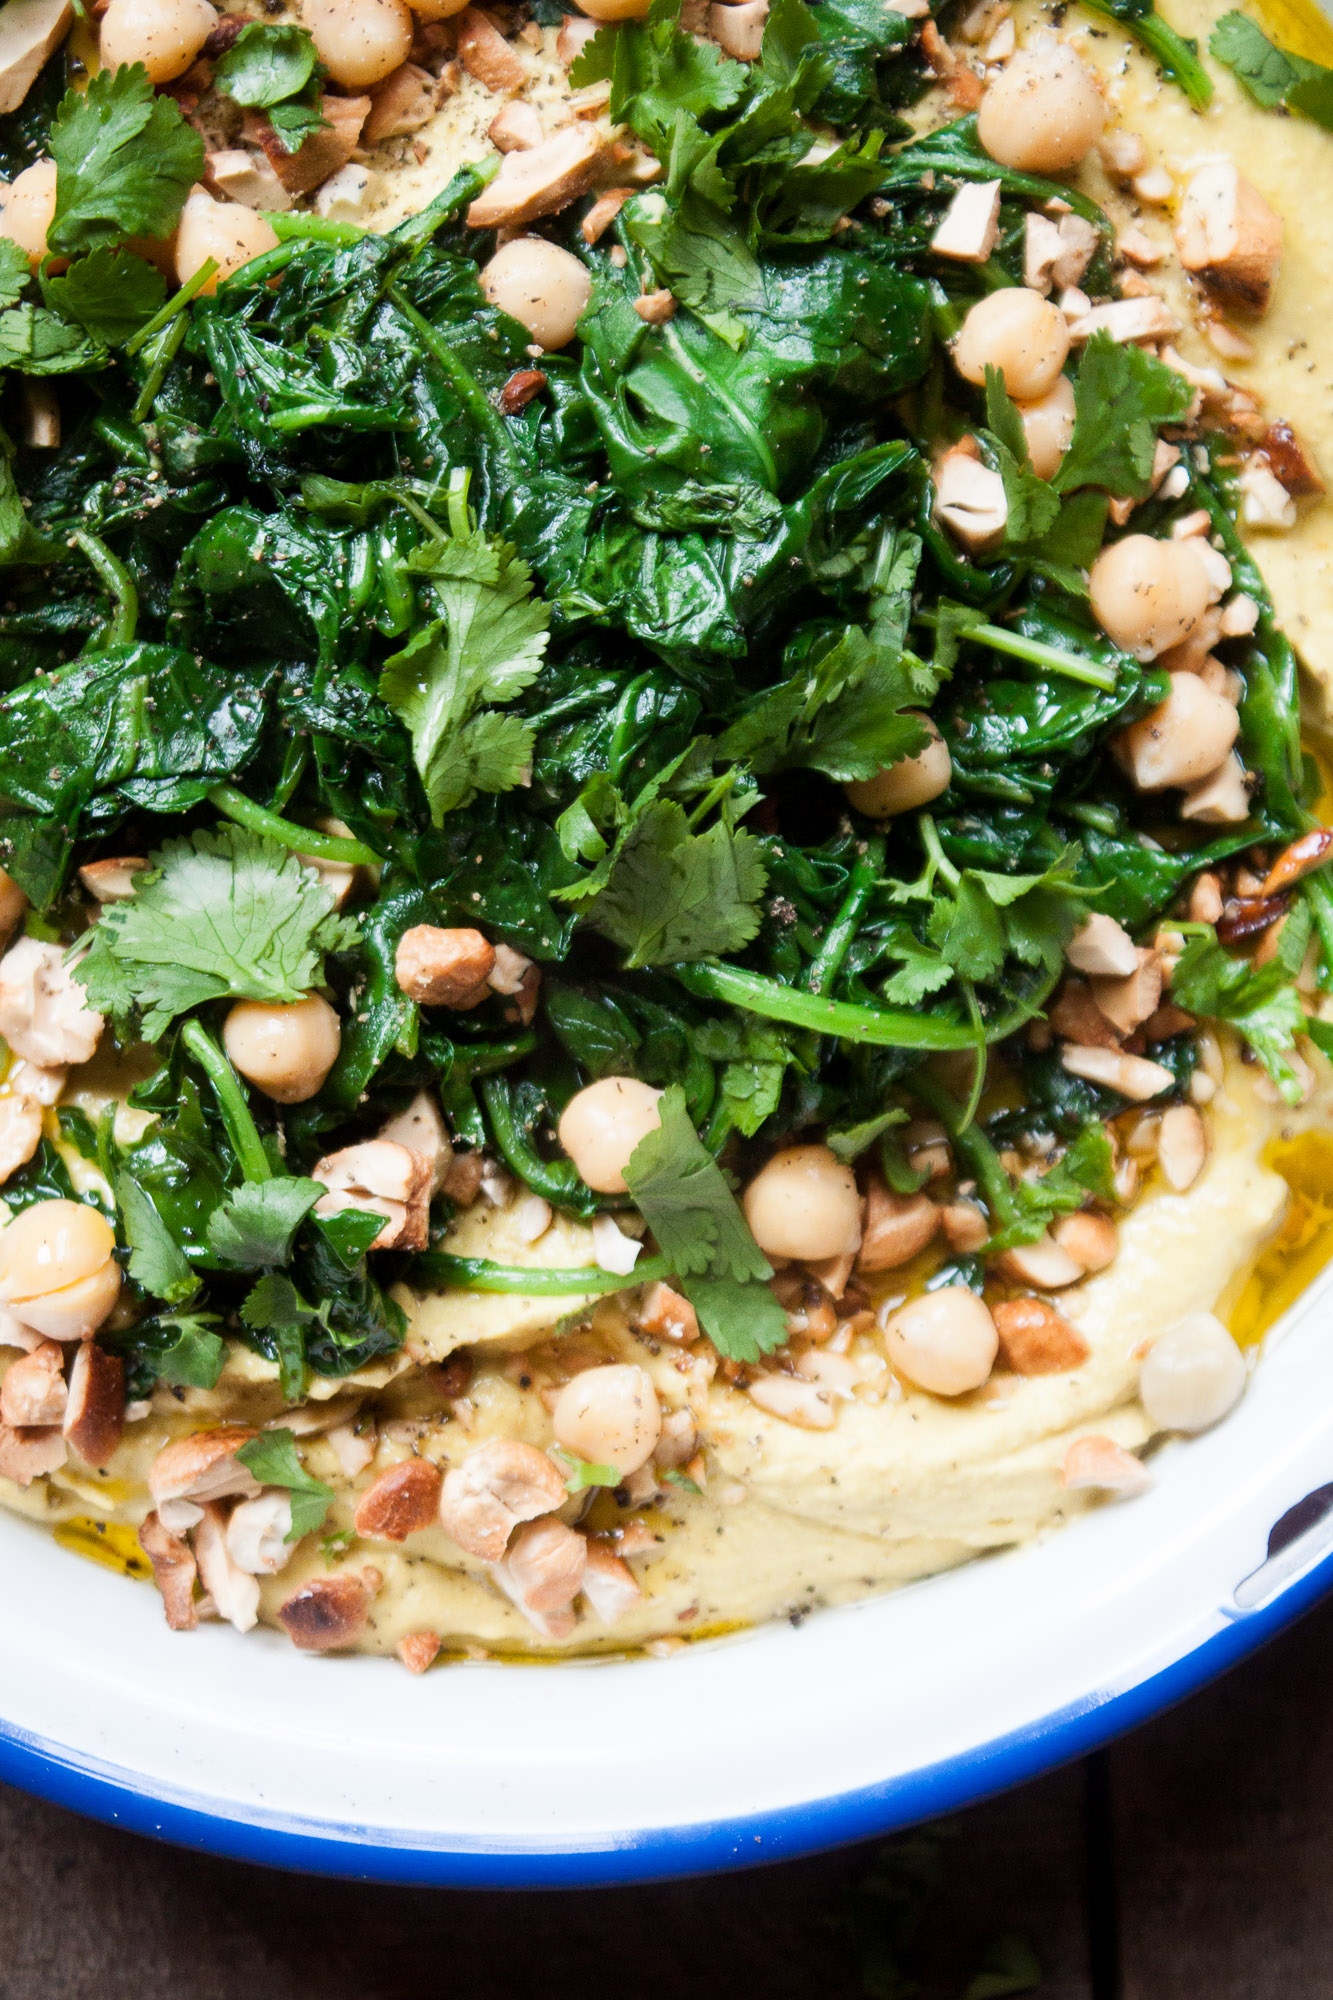 Chipotle Hummus Platter with Cashews + Greens